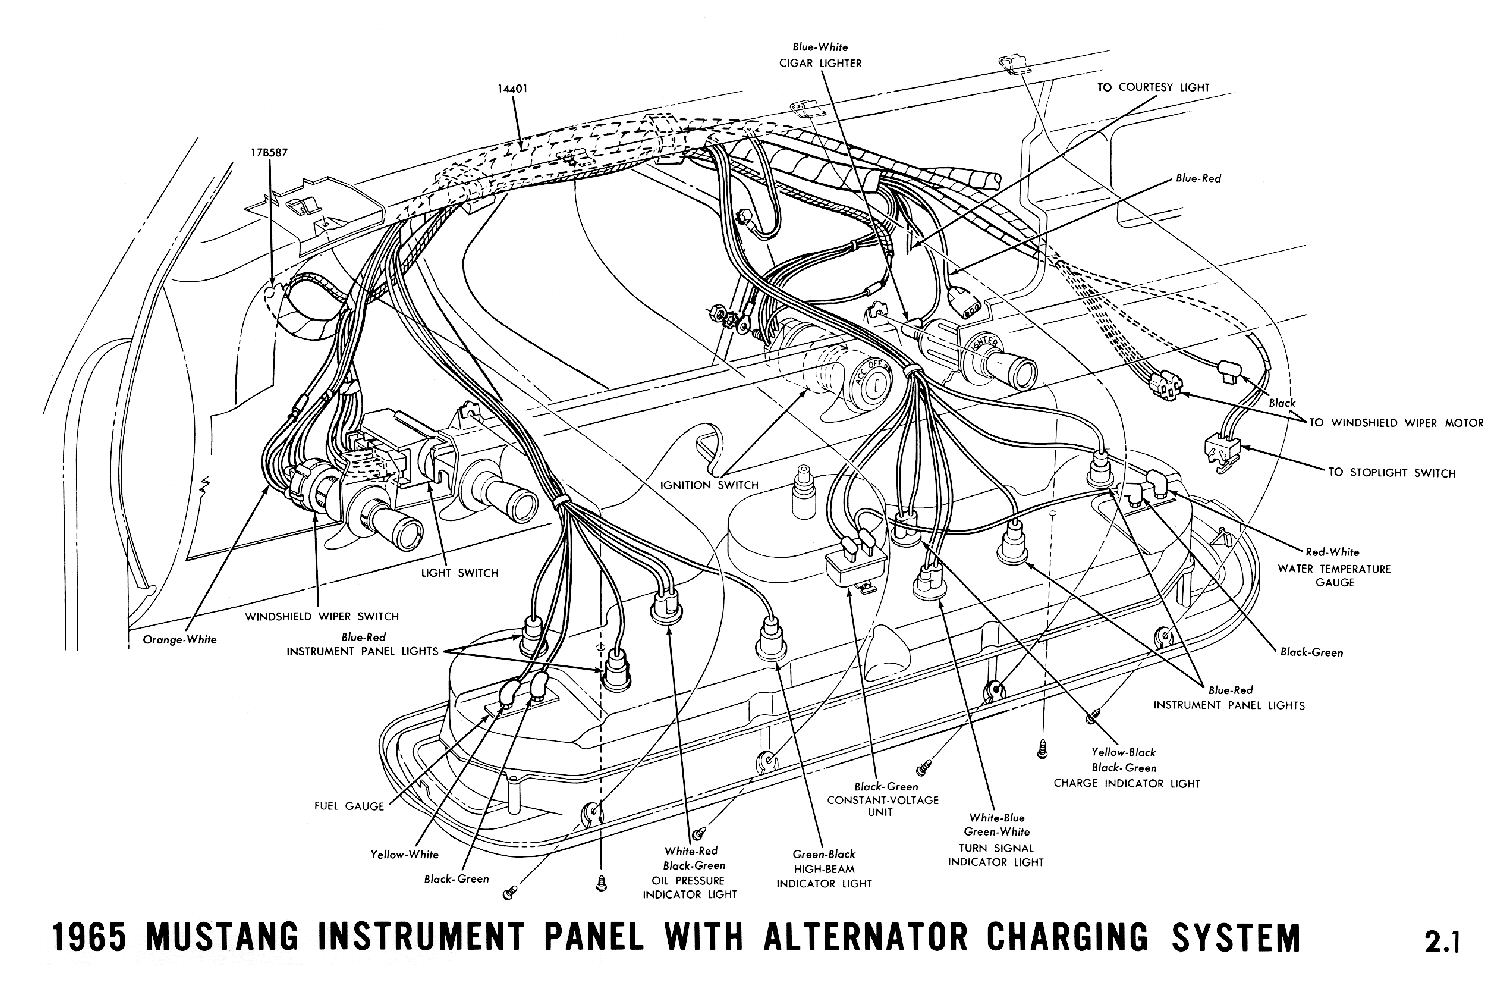 1965 Mustang Fuse Box Worksheet And Wiring Diagram 67 Nova Detailed Schematics Rh Mrskindsclass Com